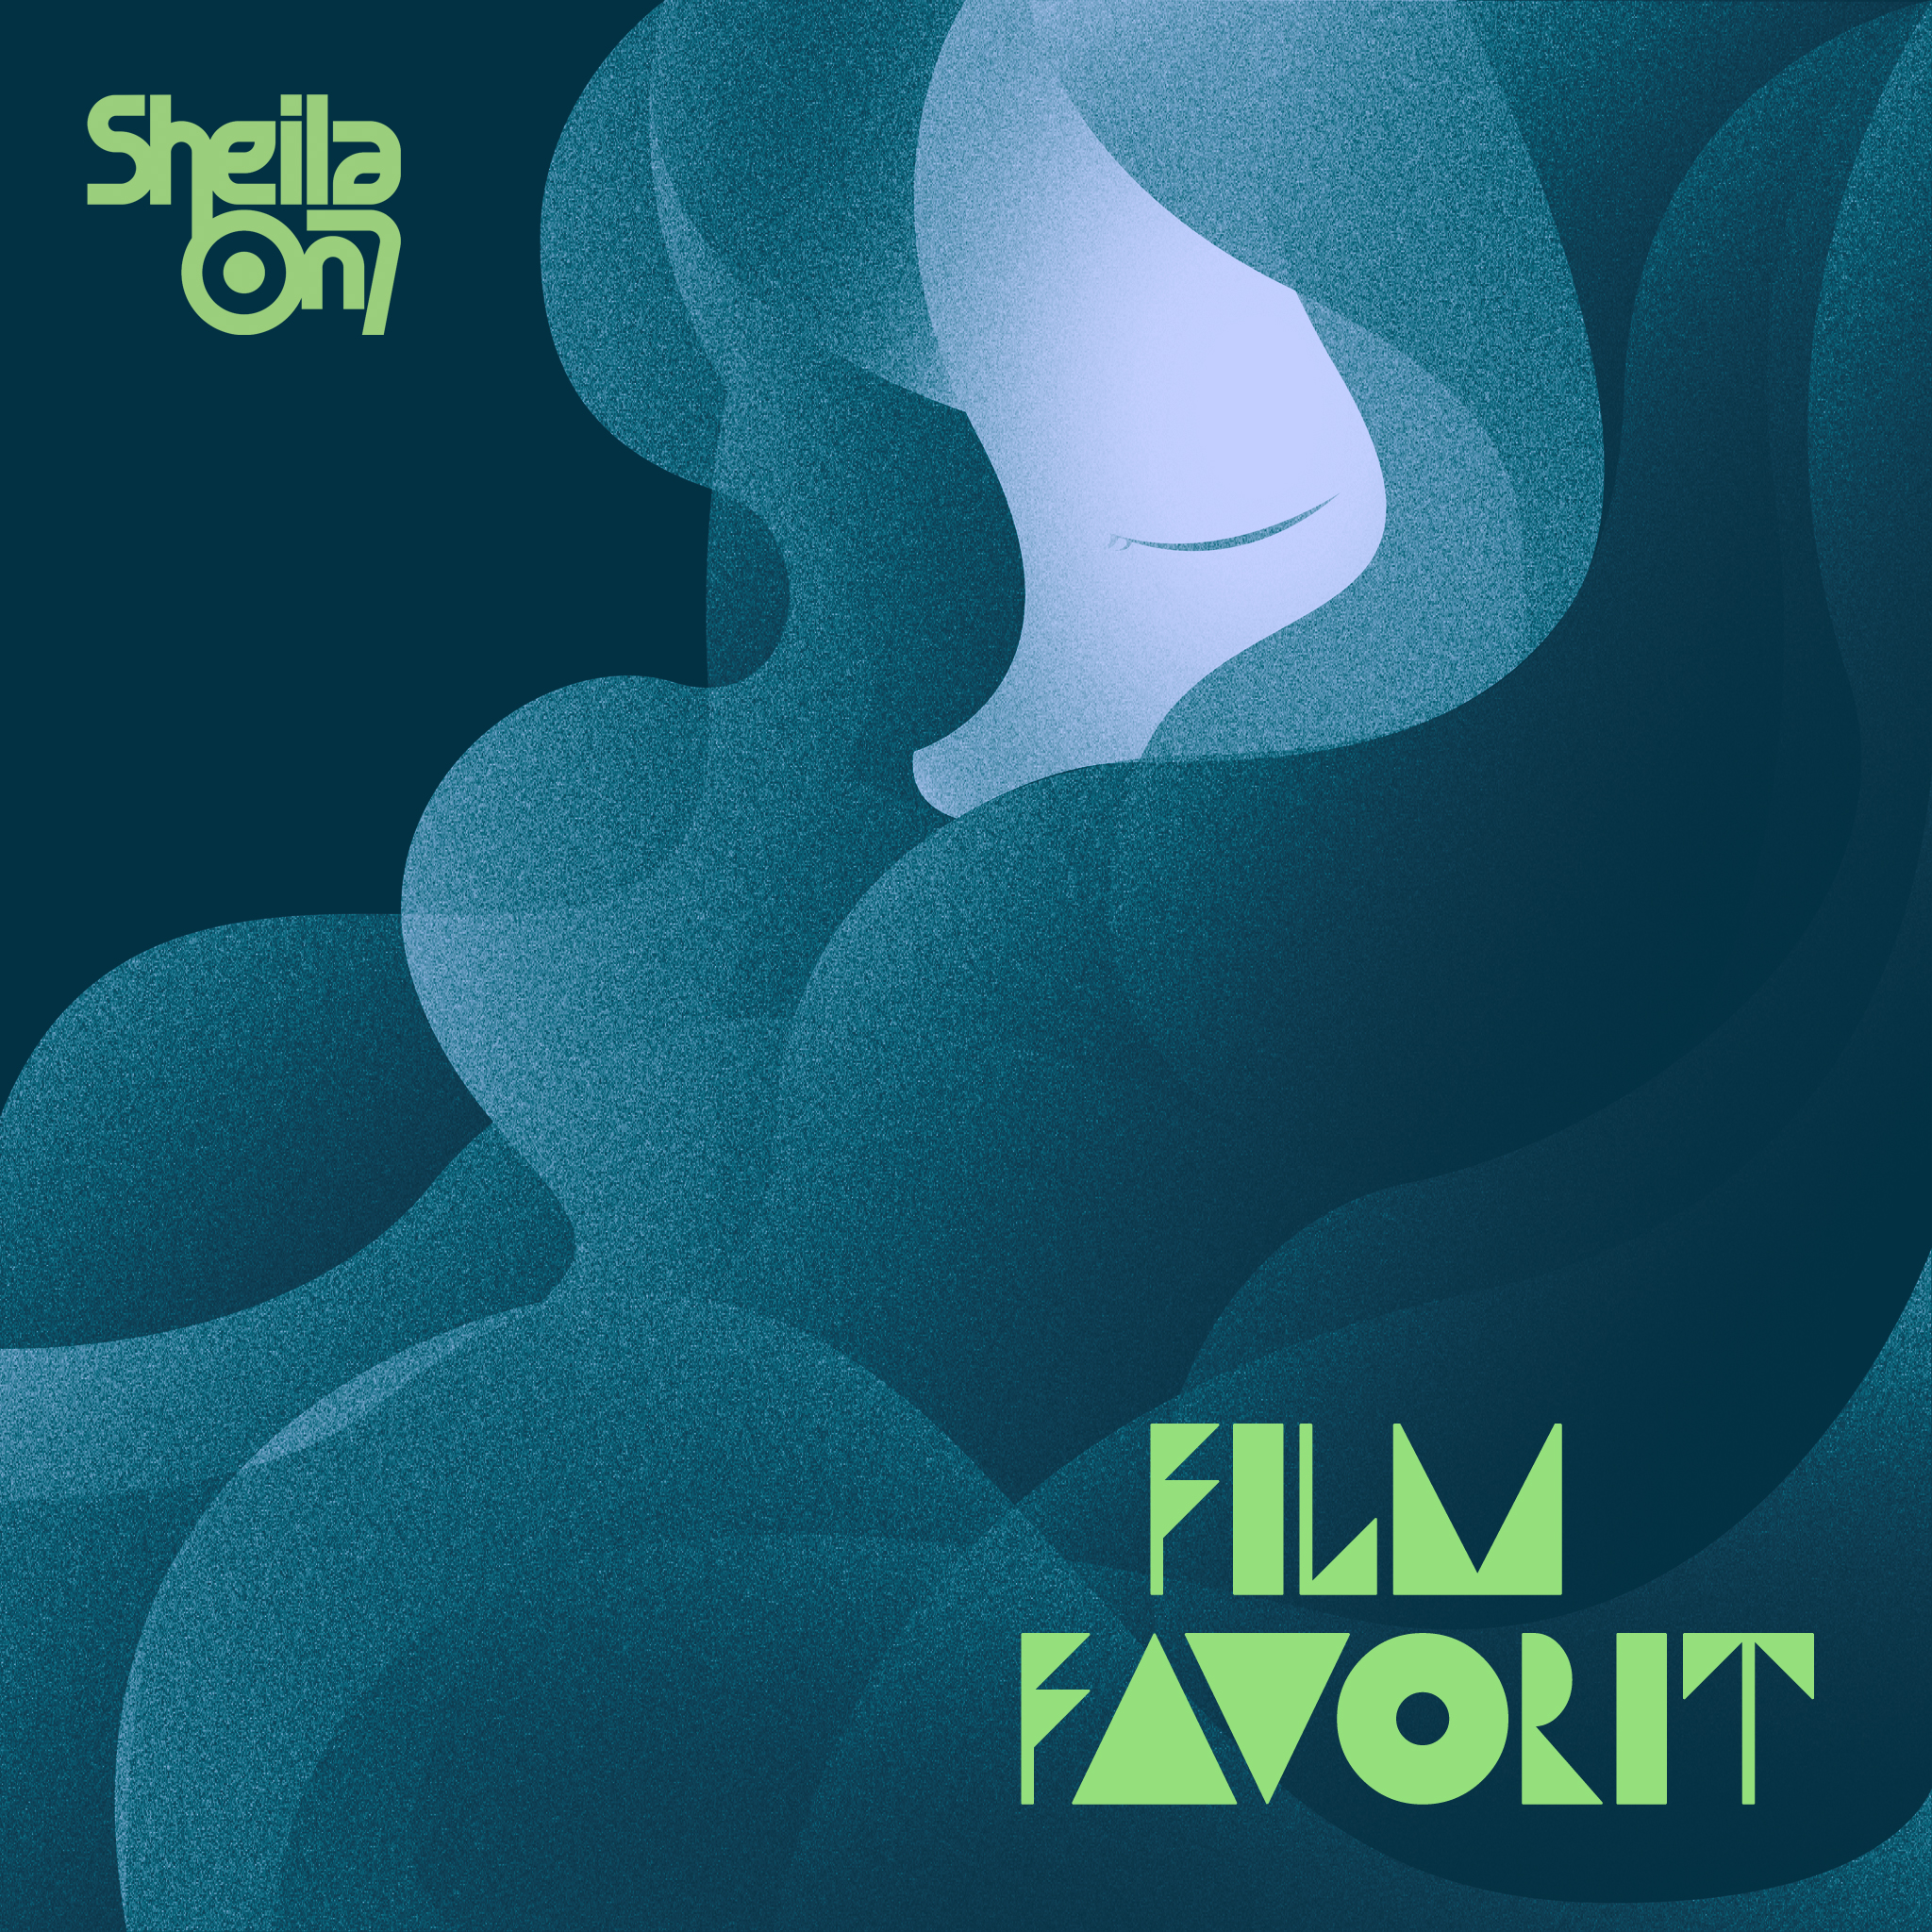 Artwork - Sheila on 7 - Film Favorit